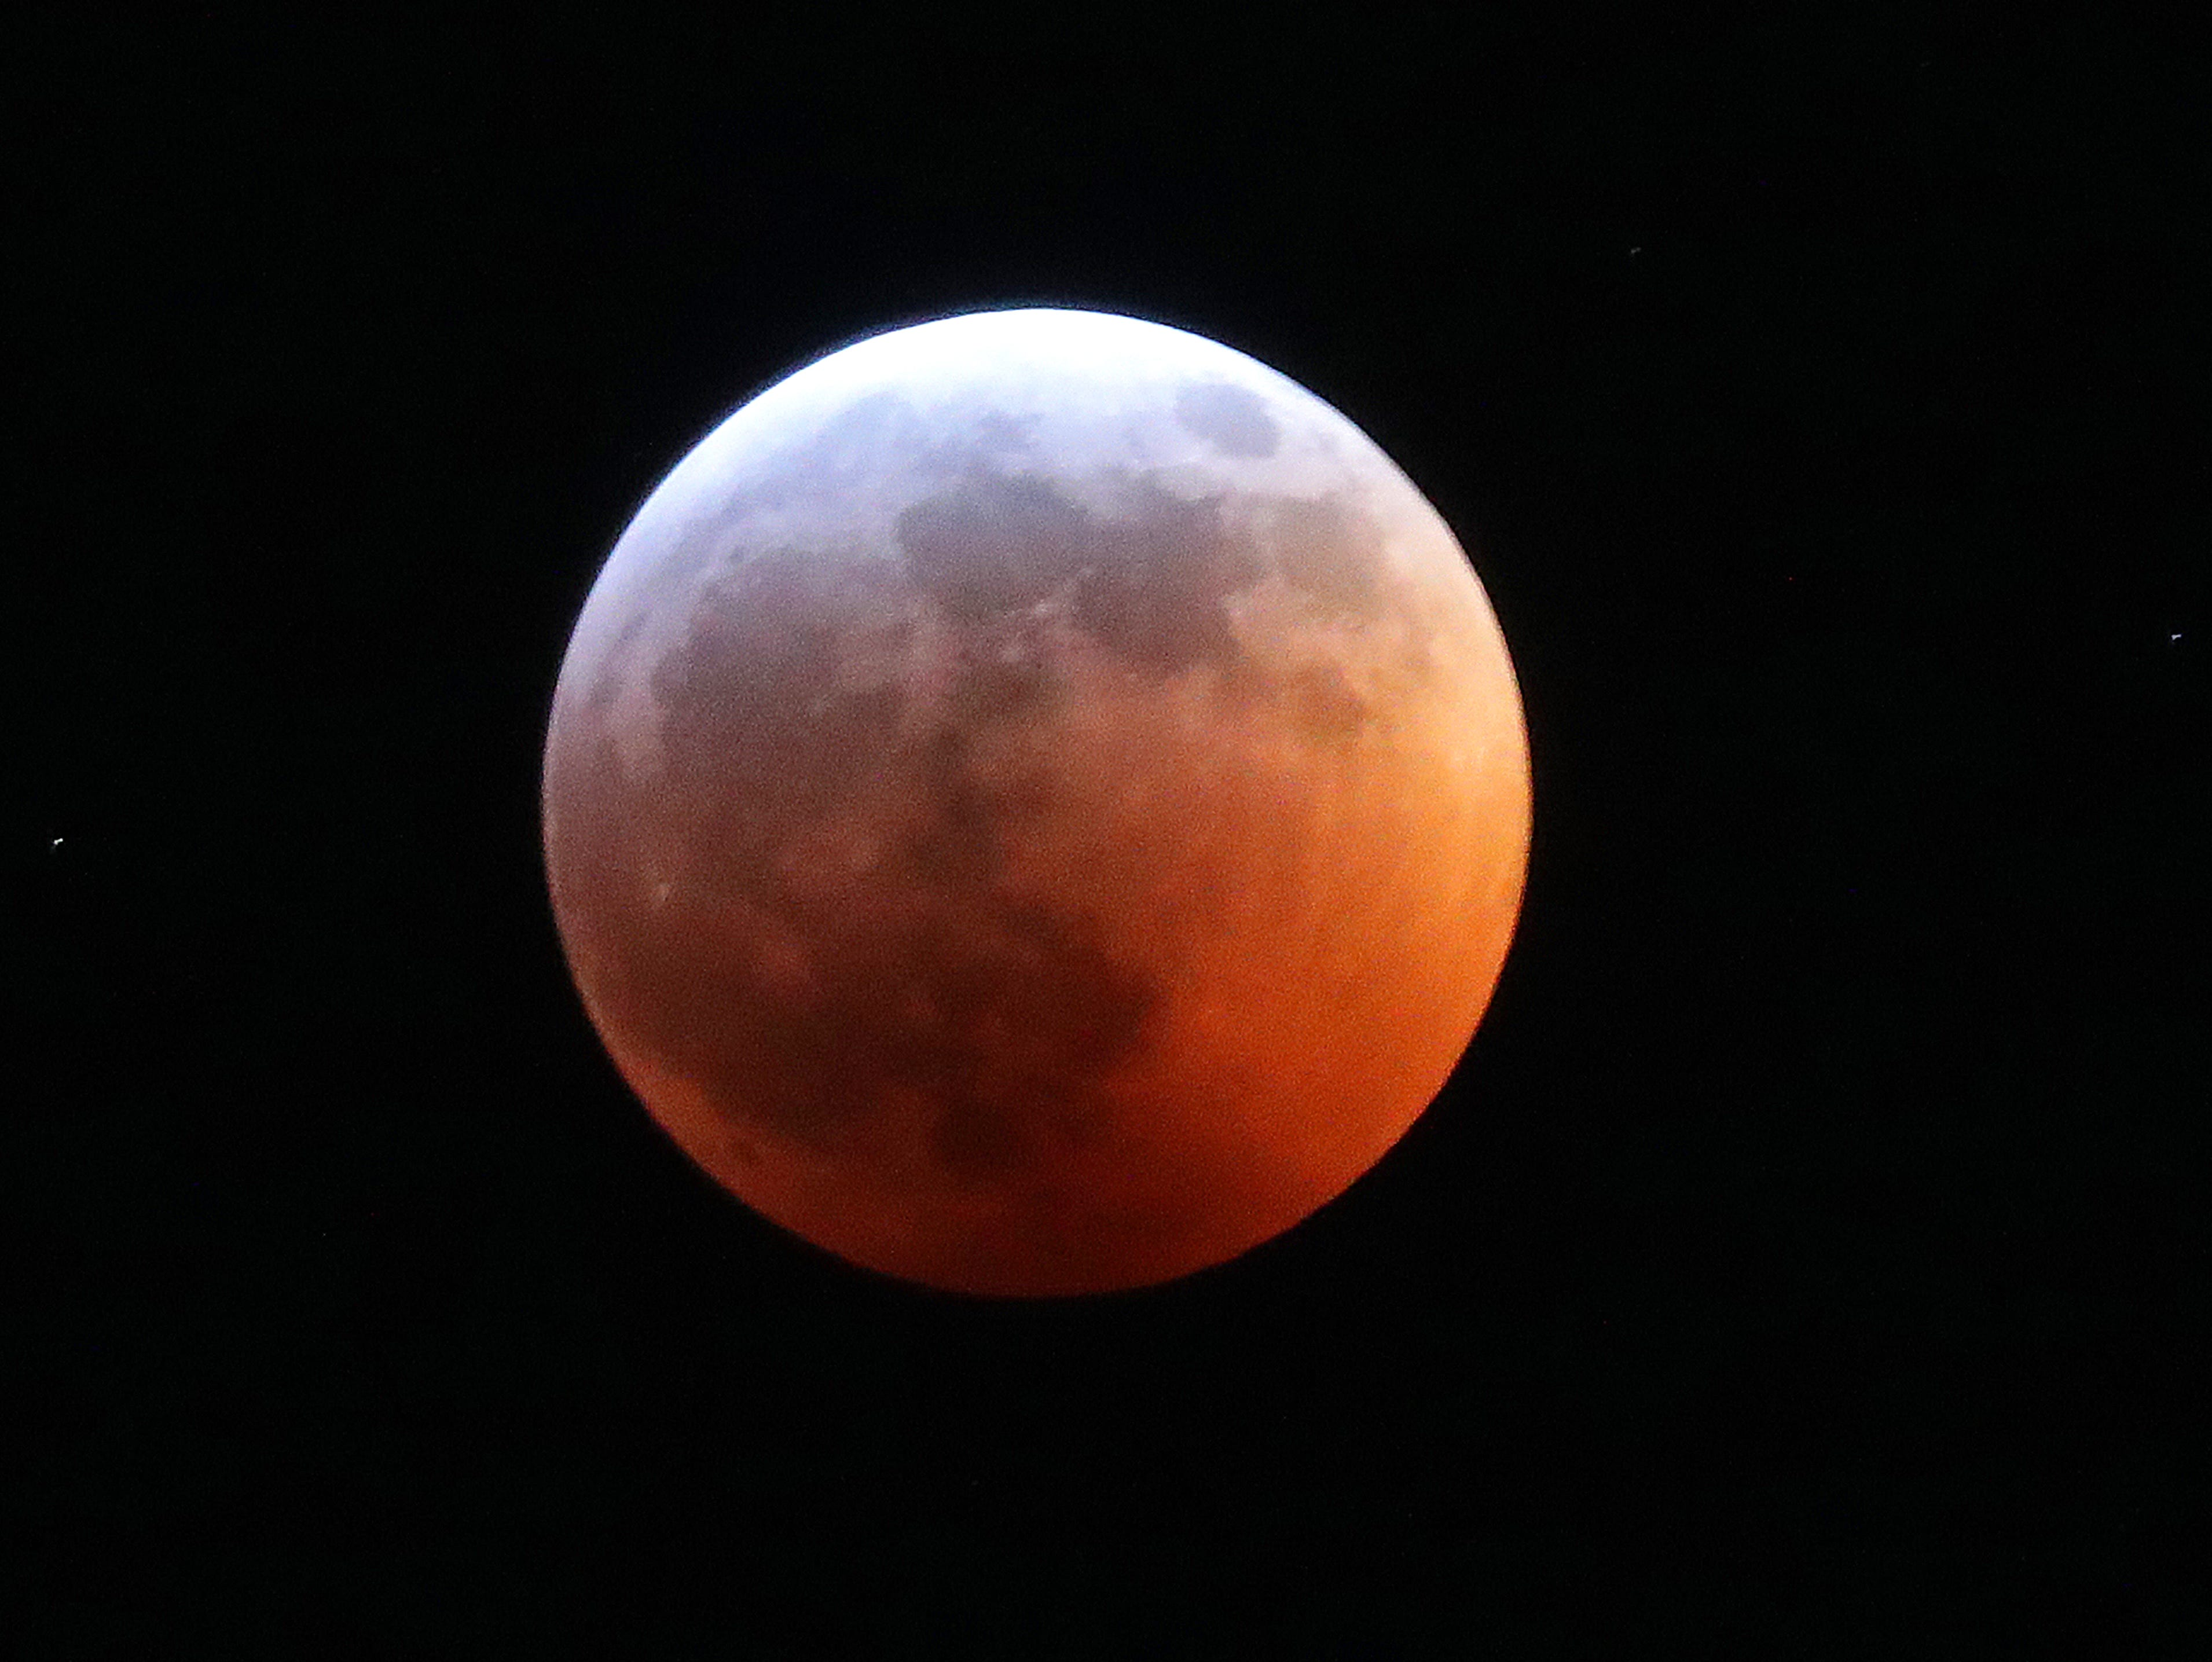 A total lunar eclipse blood moon is seen.  It's also a supermoon and wolf moon, which means the full moon is fairly close to Earth, sports a reddish tinge and happens during the month when Native Americans and others notice wolves frequently howling at Earth's nearest celestial neighbor.